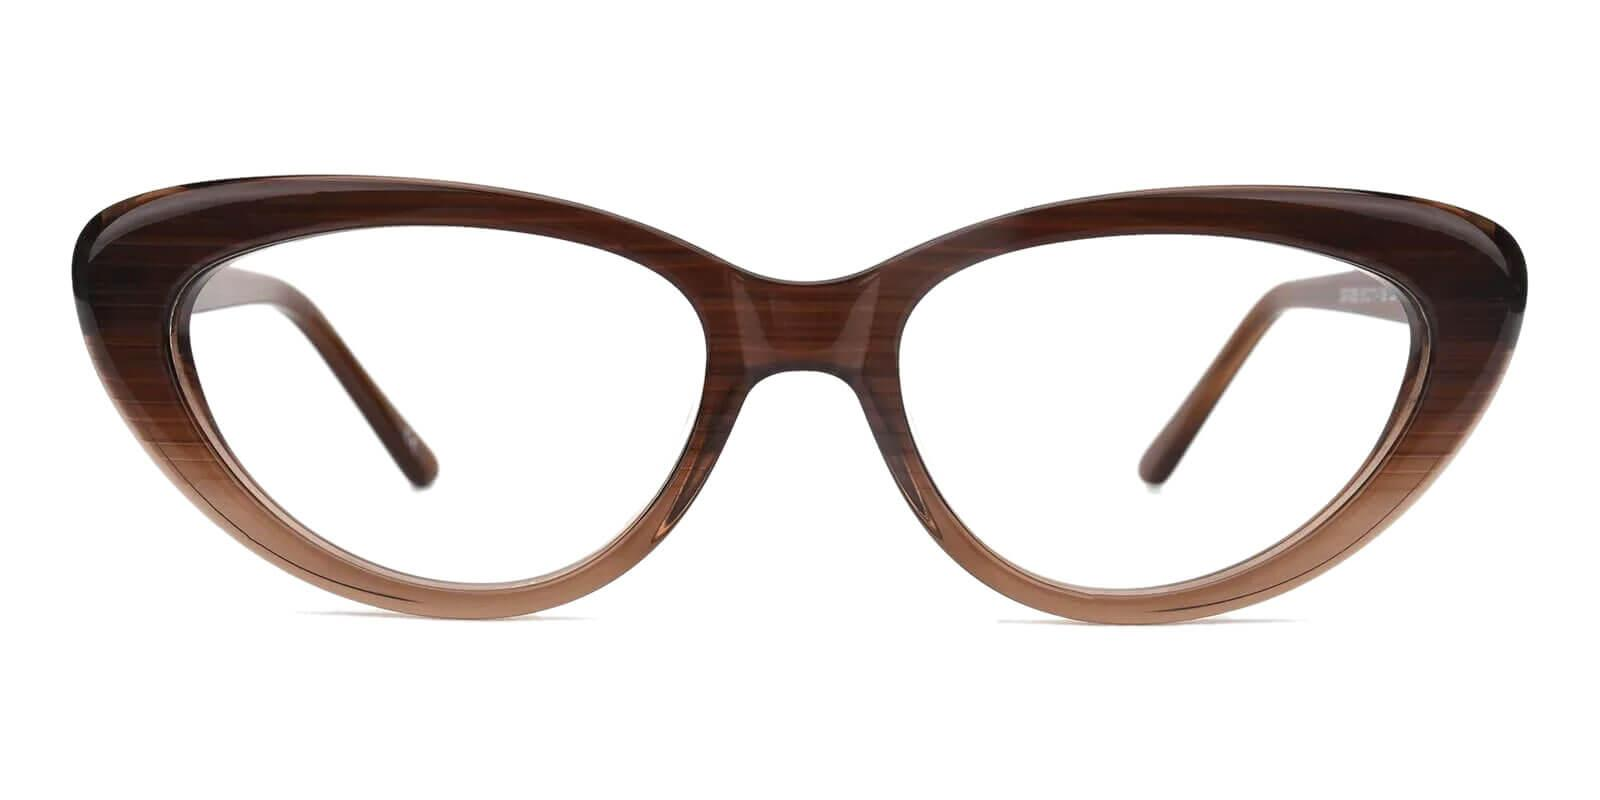 Stella Cream Acetate Eyeglasses , SpringHinges , UniversalBridgeFit Frames from ABBE Glasses